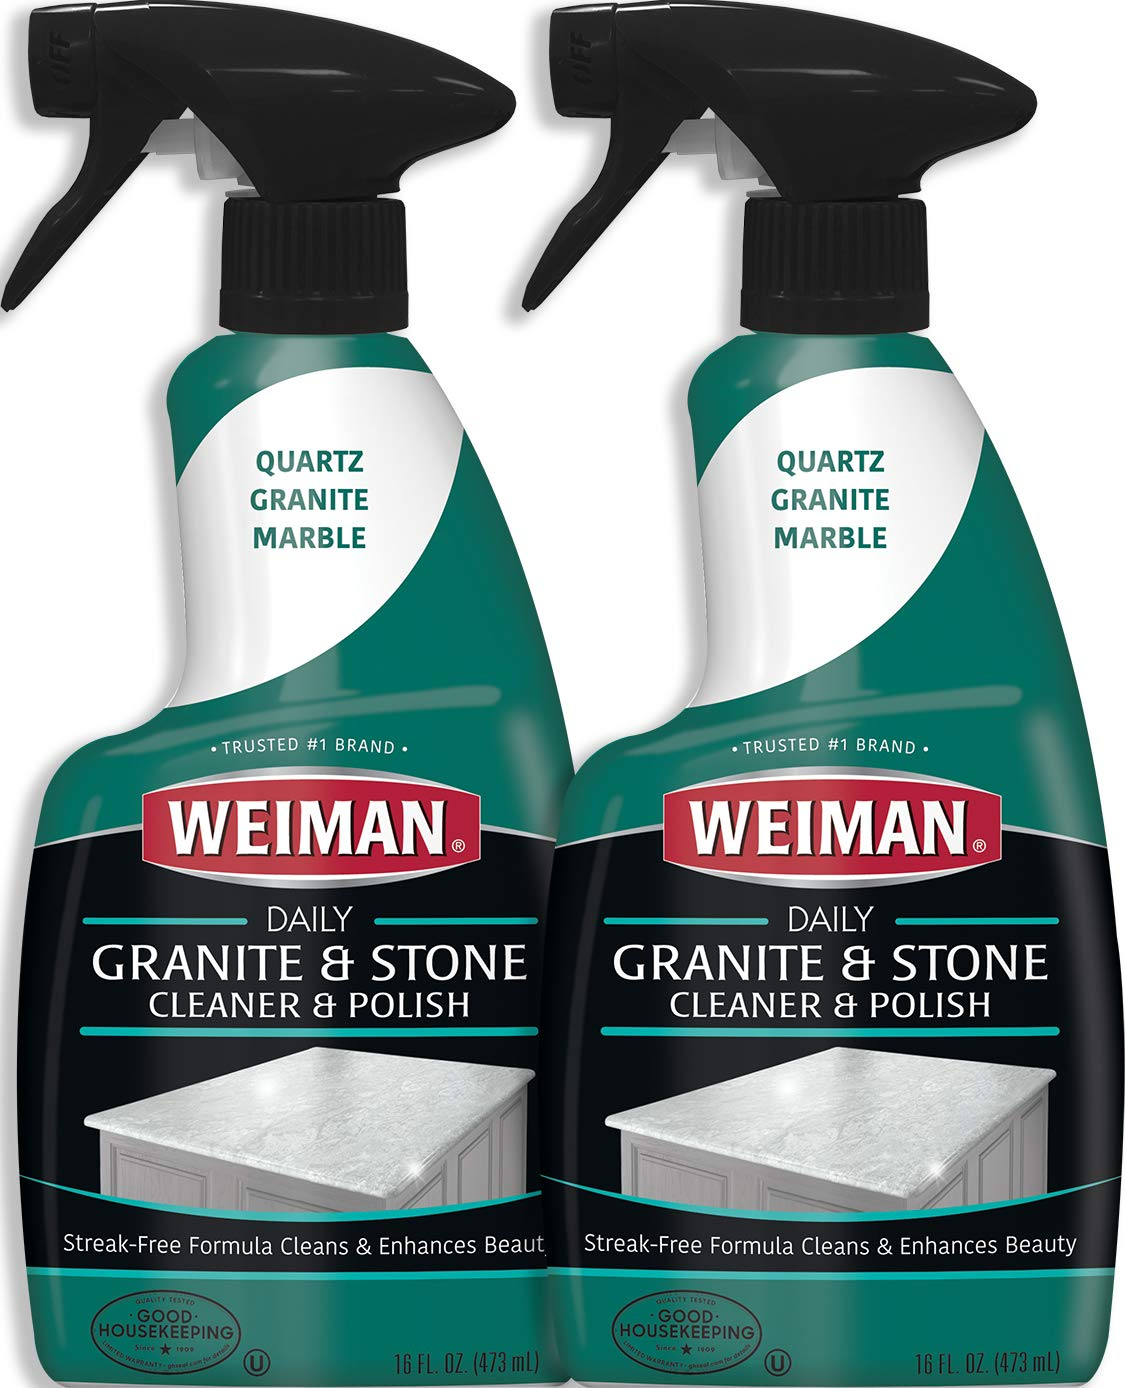 Weiman Granite Cleaner and Polish - 16 Ounce 2 Pack - Non Toxic for Granite Marble Soapstone Quartz Quartzite Slate Limestone Corian Laminate Tile Countertop and More by Weiman